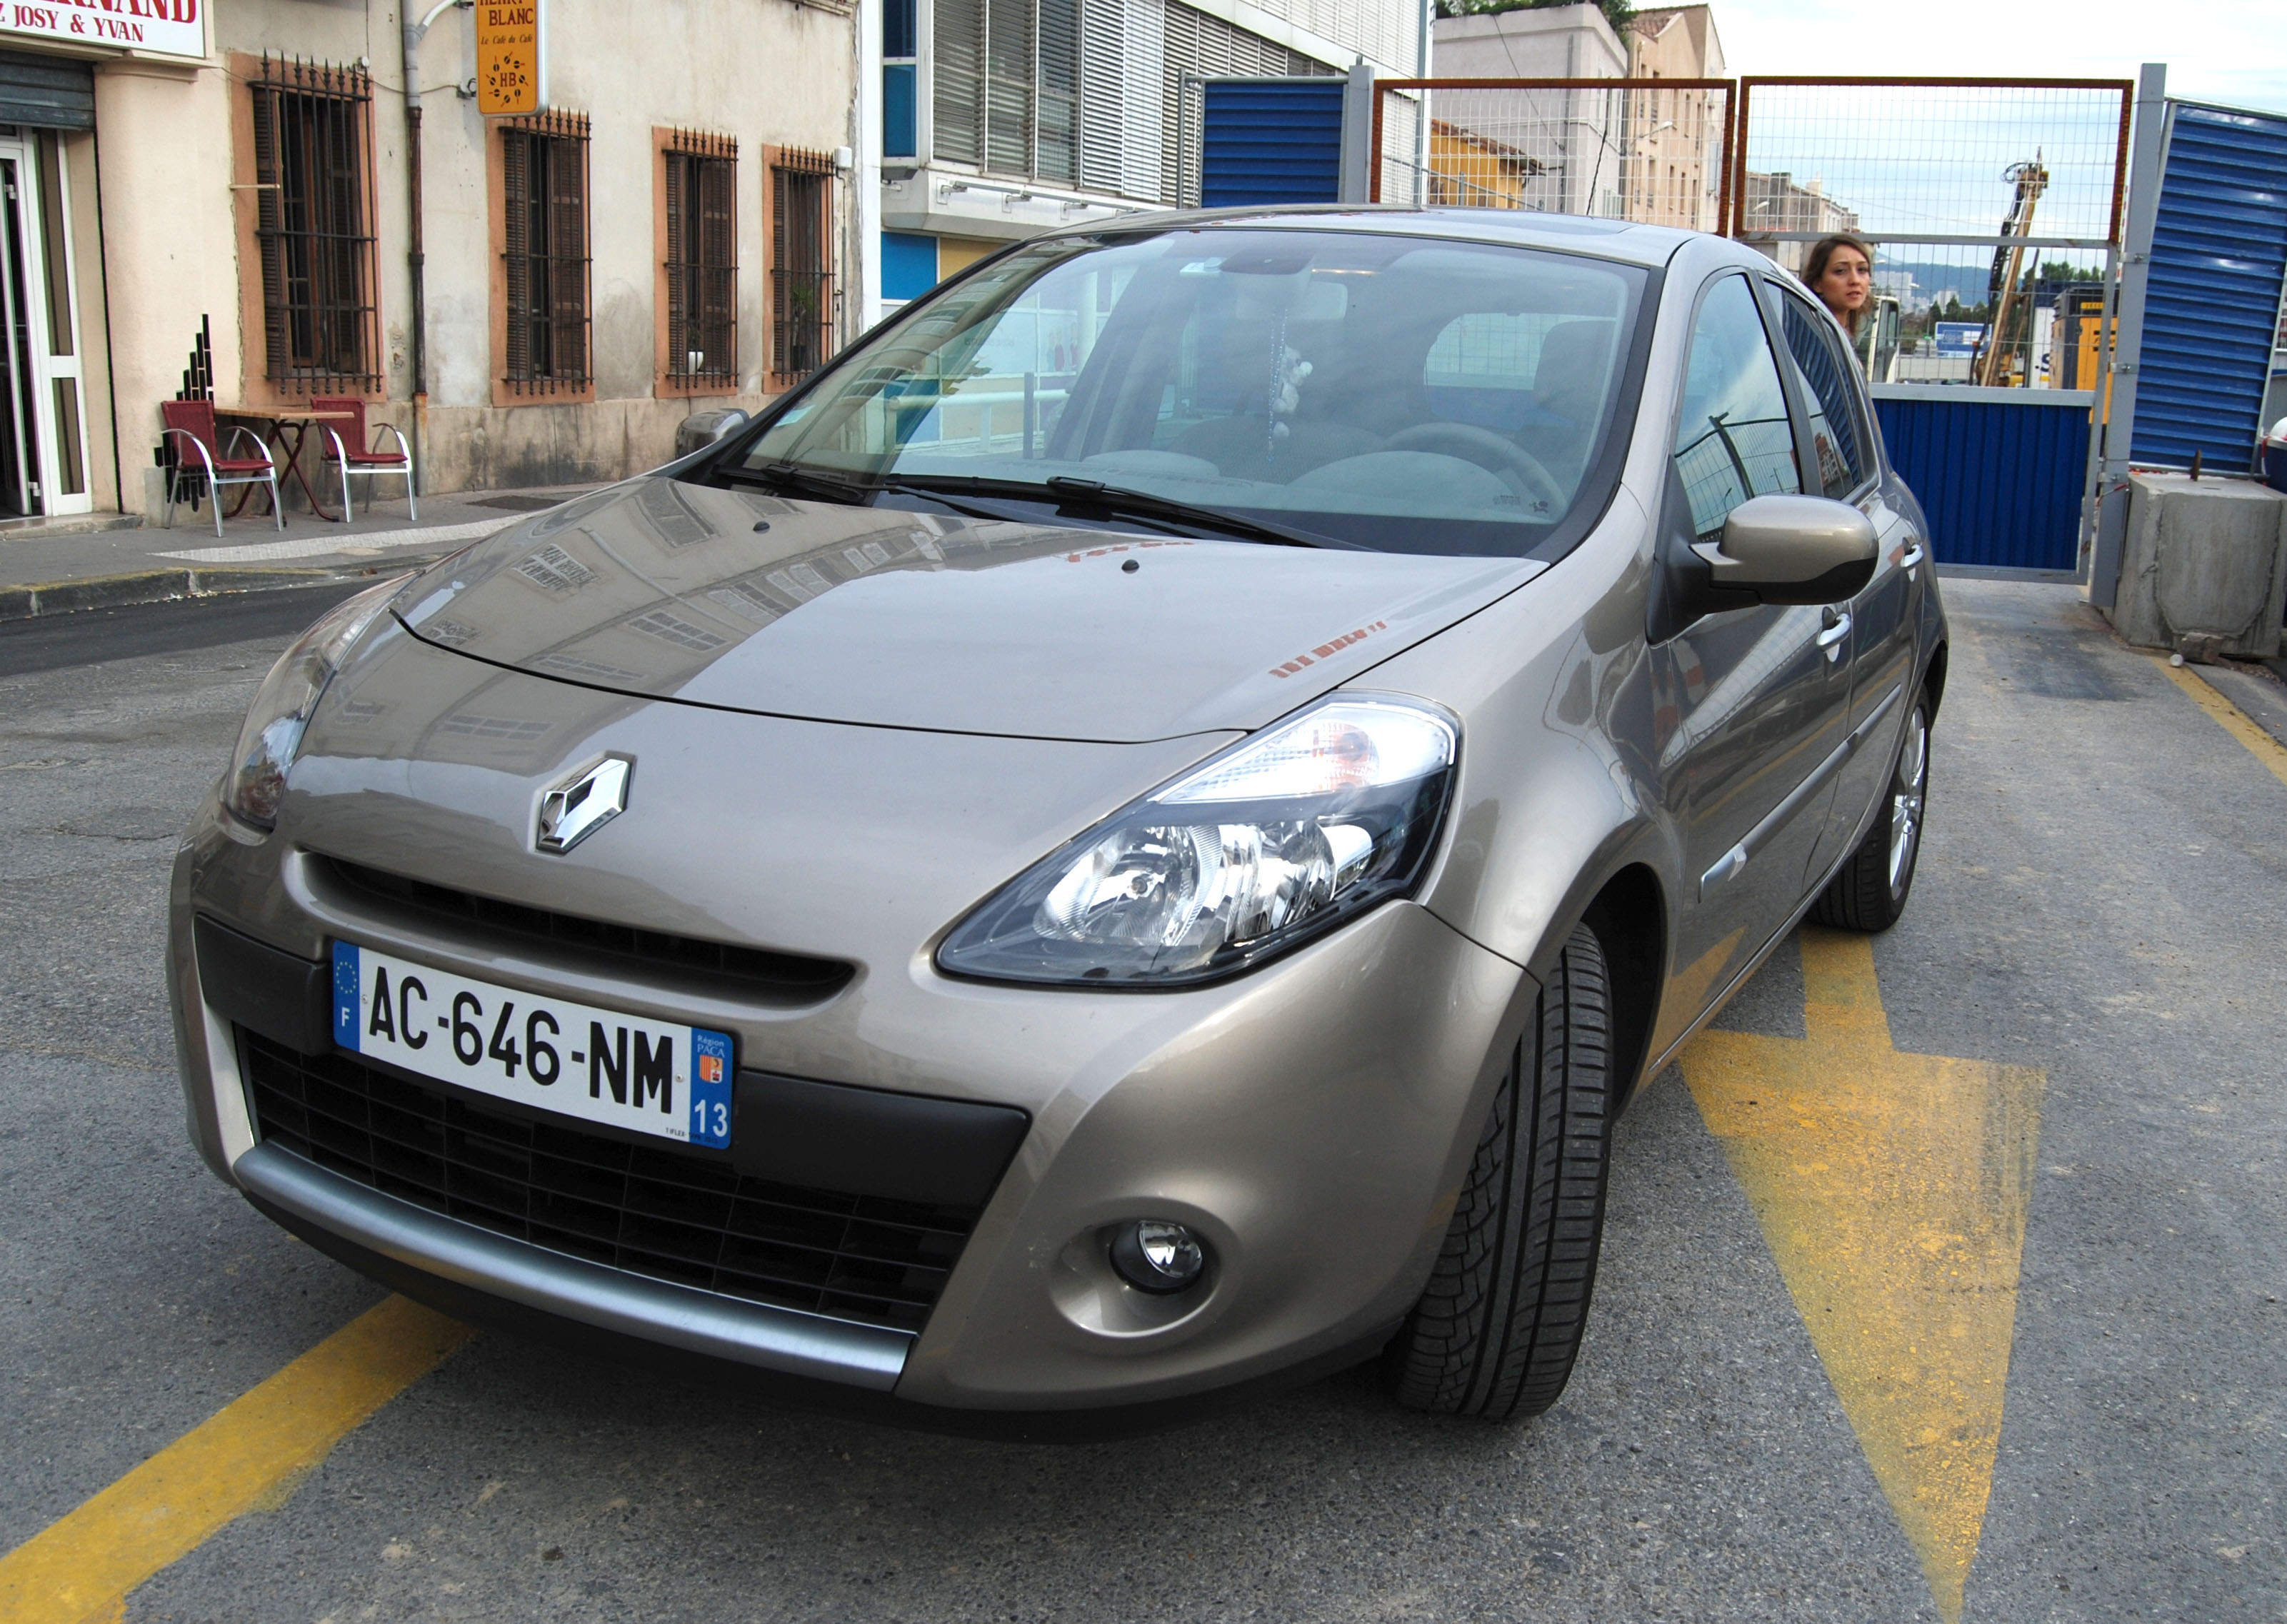 clio 3 phase 2 occasion voiture occasion renault clio iii de 2009 30 100 km renault clio iii. Black Bedroom Furniture Sets. Home Design Ideas